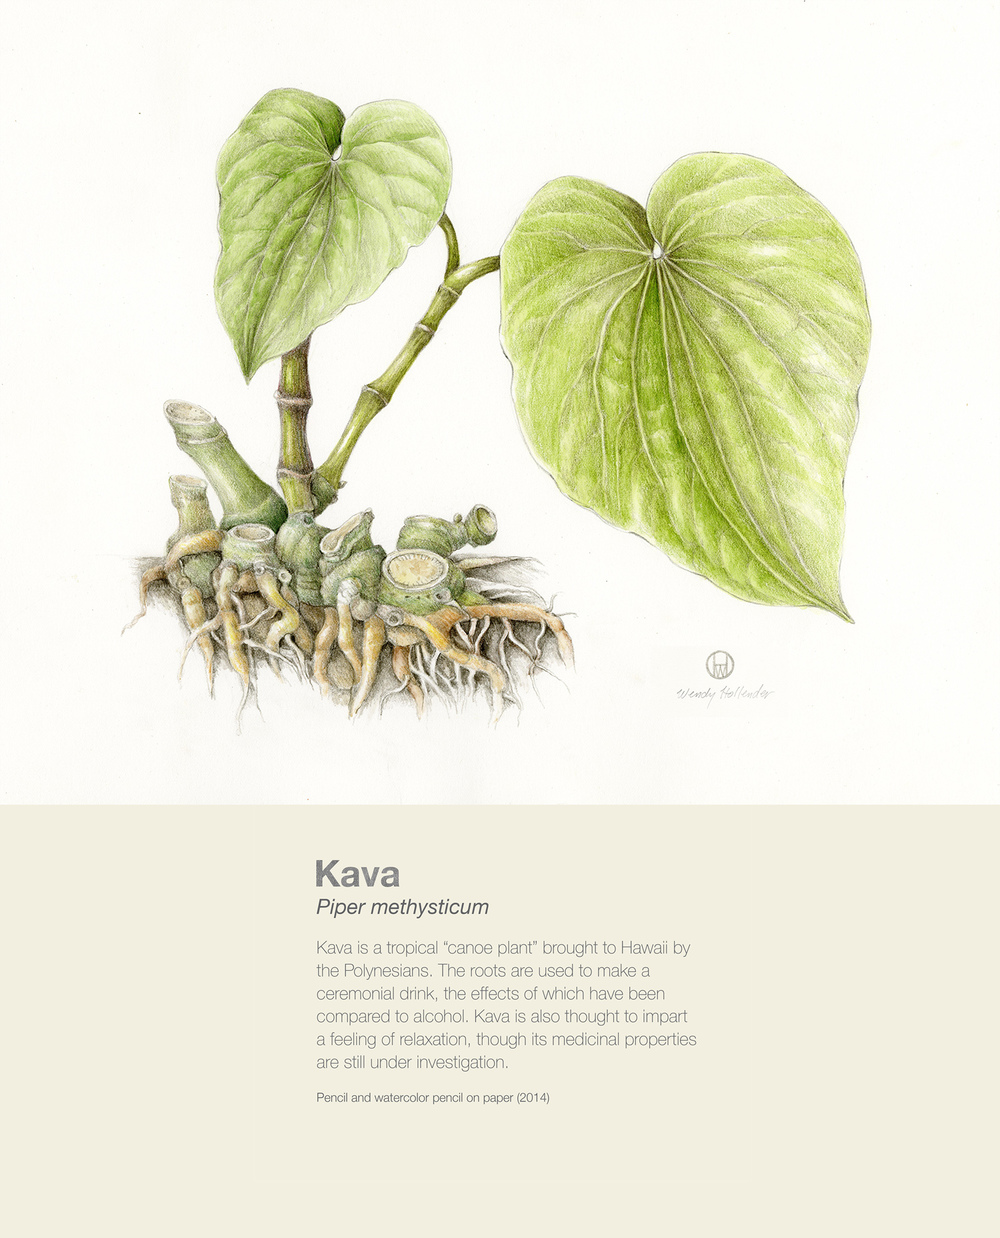 Kava - Piper methysticum